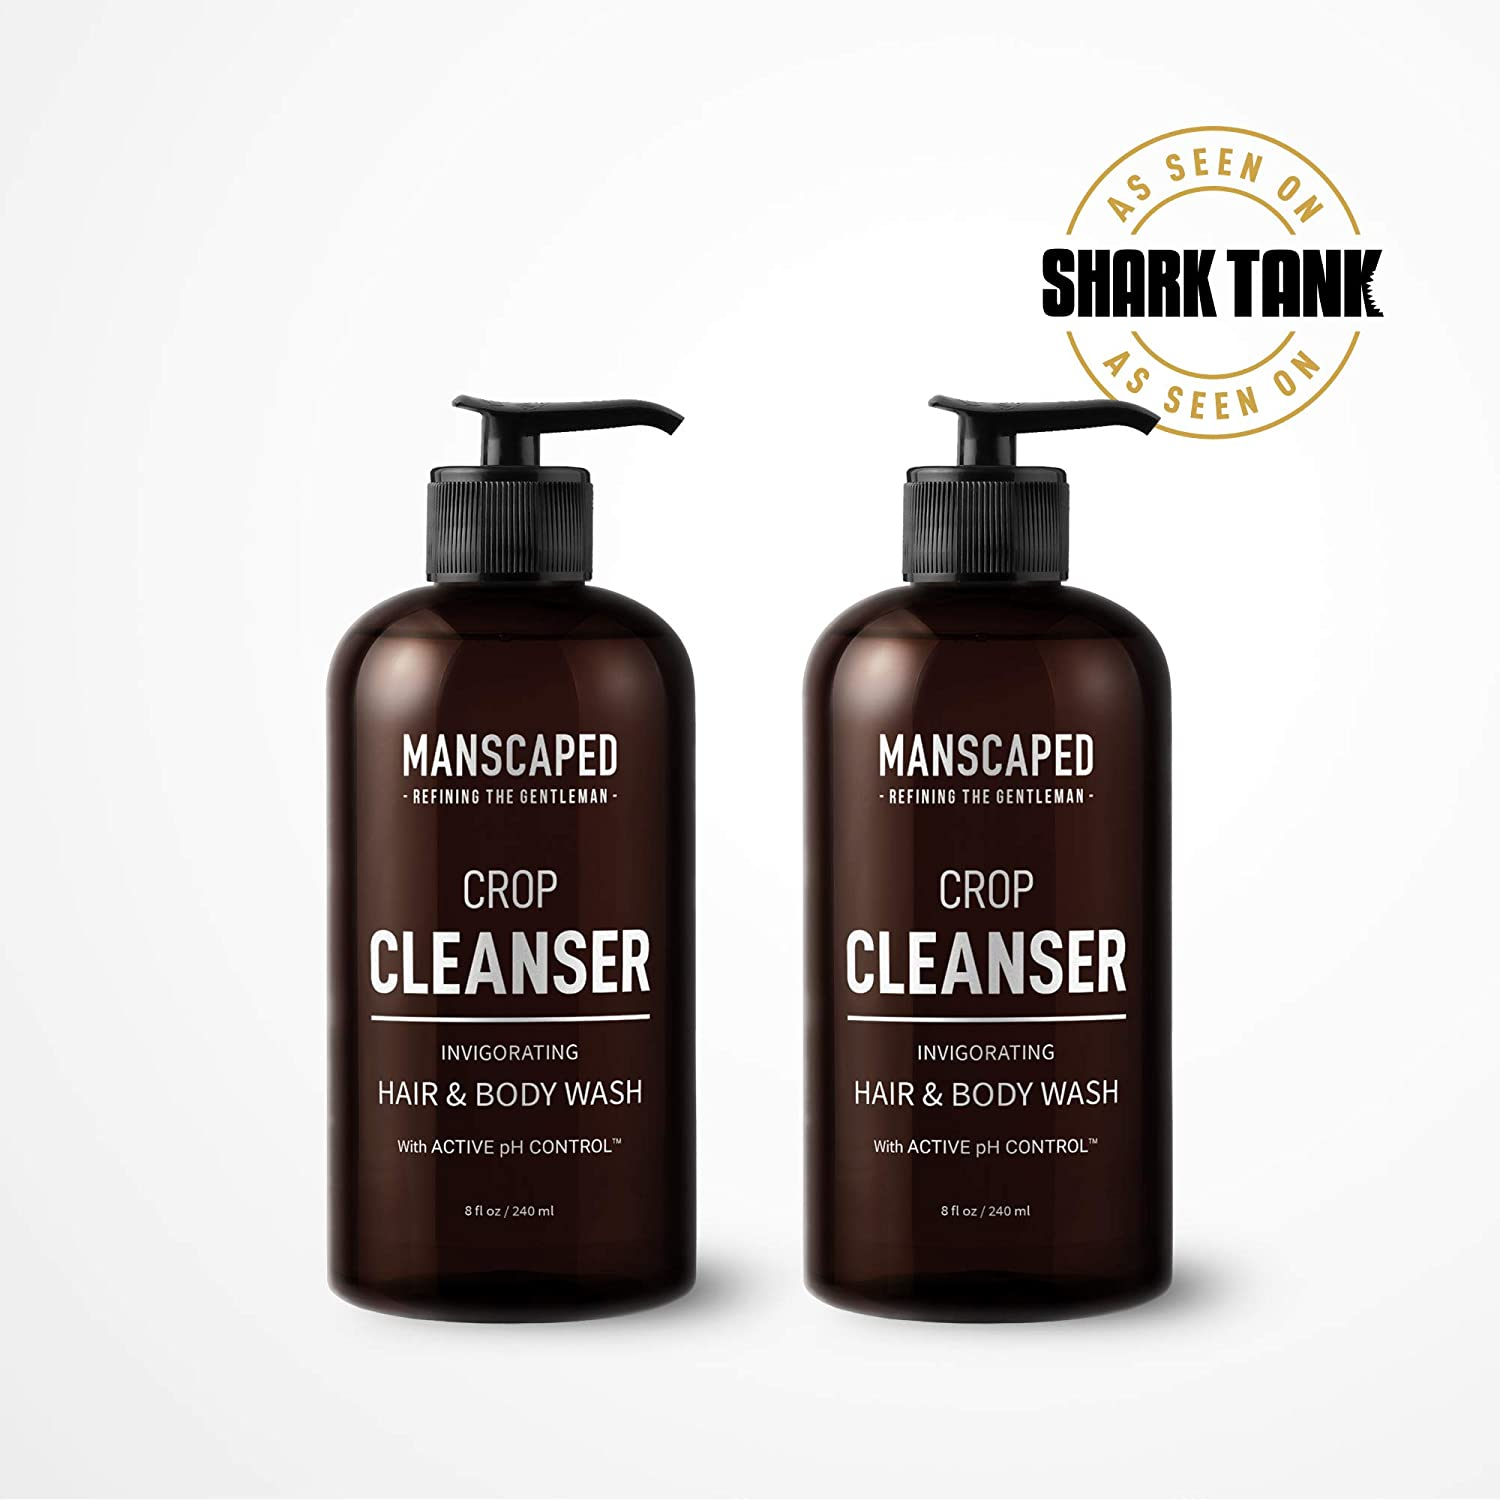 Manscaped Men's All-In-One Ball and Body Wash (2 Pack), Shower Gel For Men, The Crop Cleanser with Odor Protection and Active pH Control, Male Care, Hygiene Wash